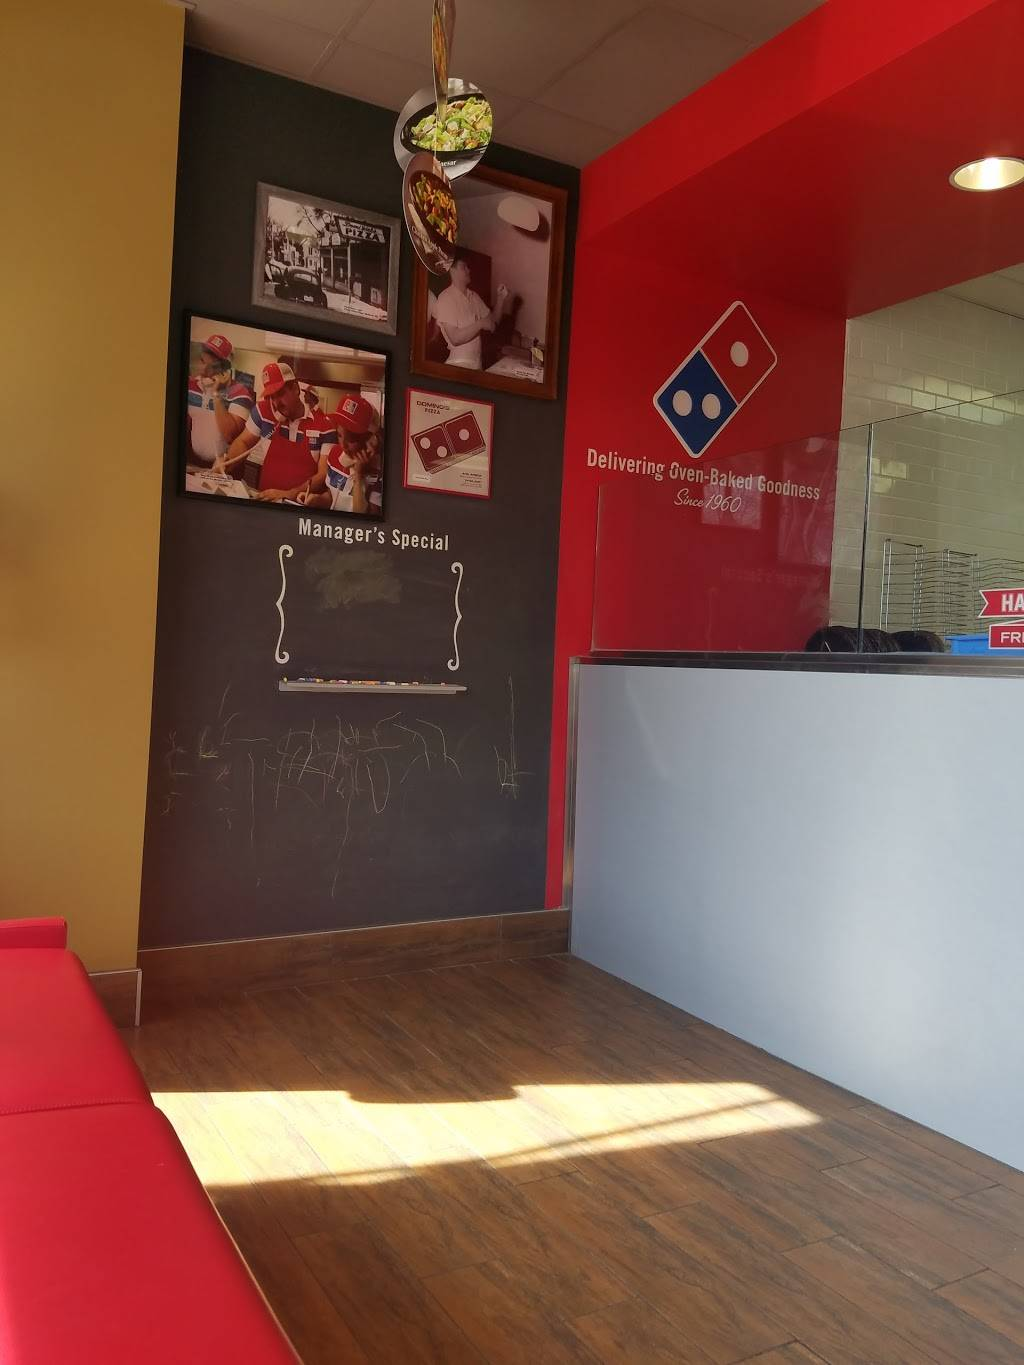 Dominos Pizza - meal delivery  | Photo 3 of 10 | Address: 4237 Louisburg Rd, Raleigh, NC 27604, USA | Phone: (919) 872-7222